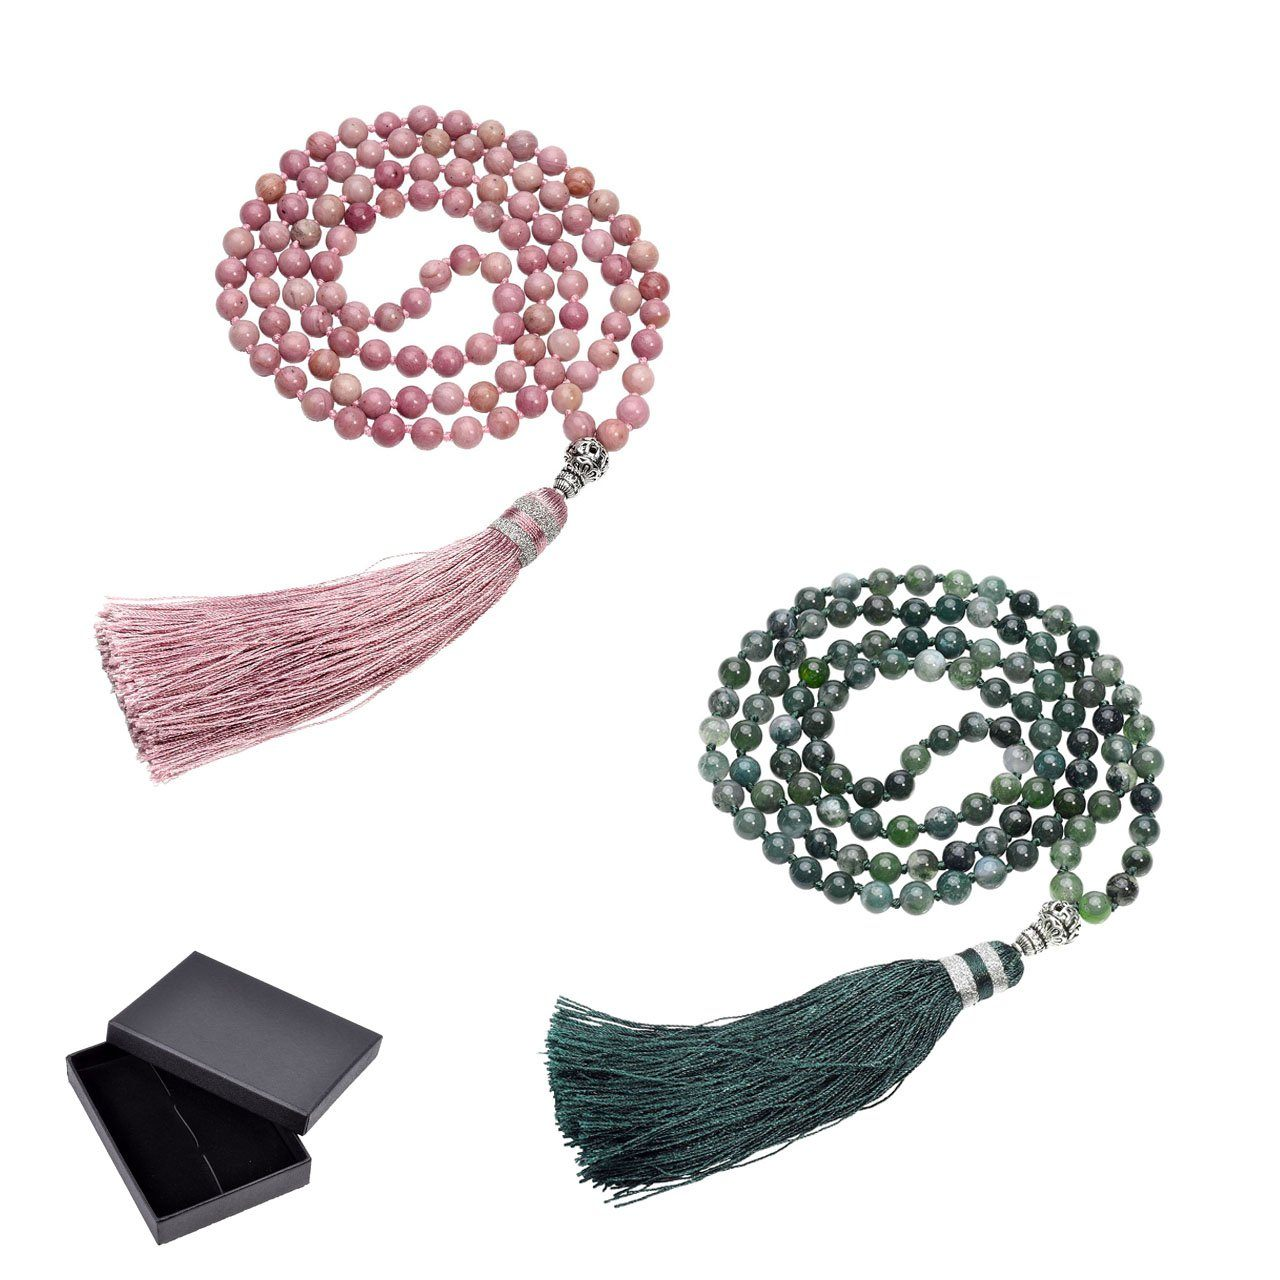 6mm Natural Rhodochrosite/Moss Agate 108 Bead Mala Strand Bracelets Ayliss Official Store 1 Set